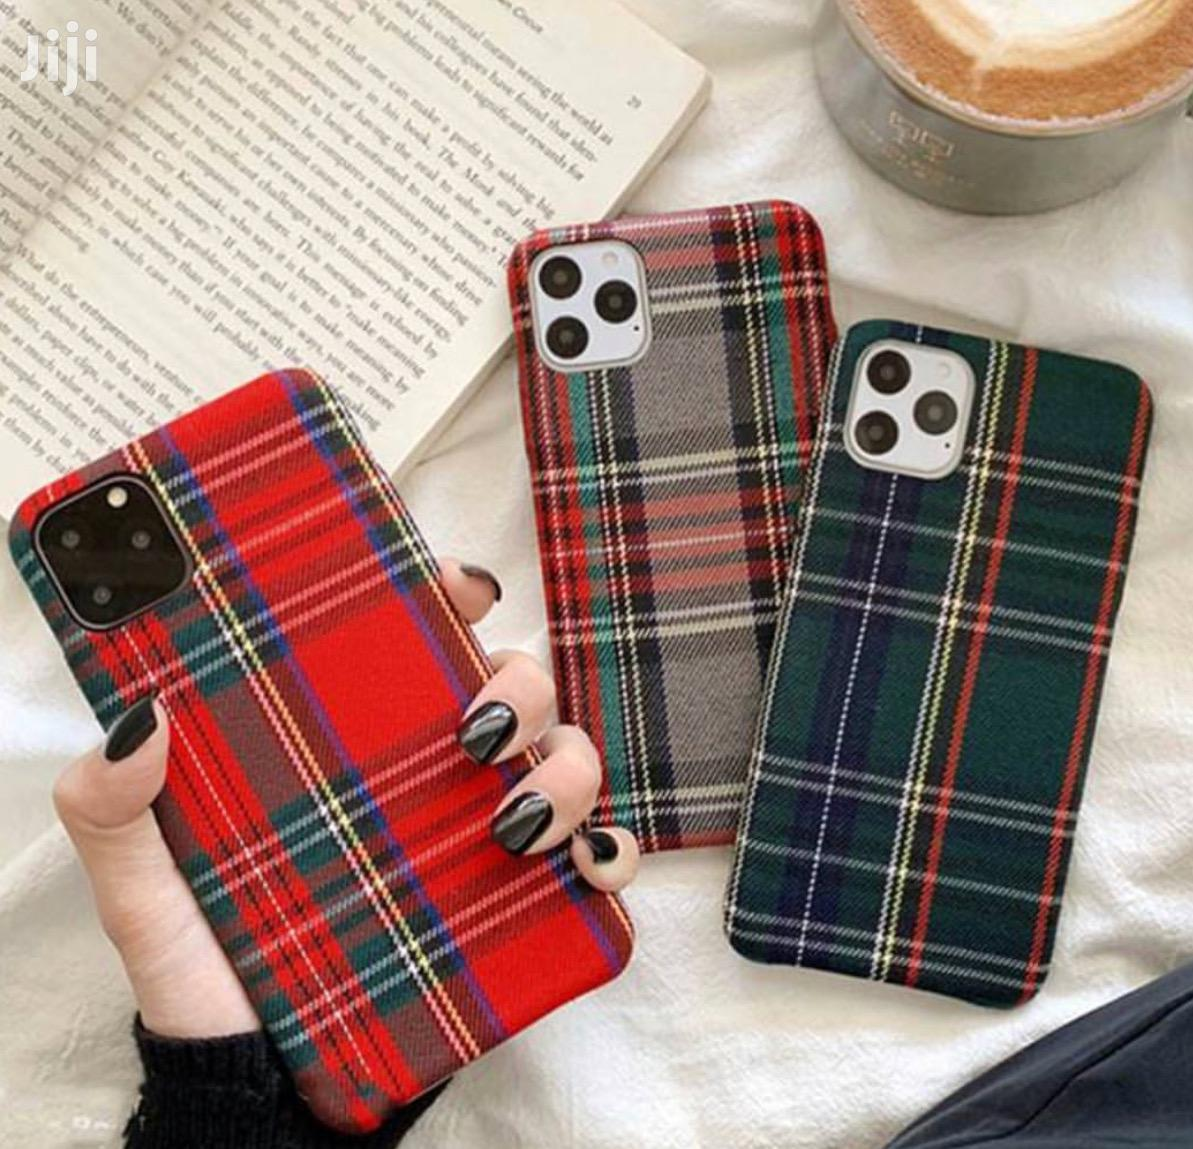 Cloth Fabric Case For iPhone 11promax 11pro 11 Xsmax Xr Xs X 8p 7p 8 7